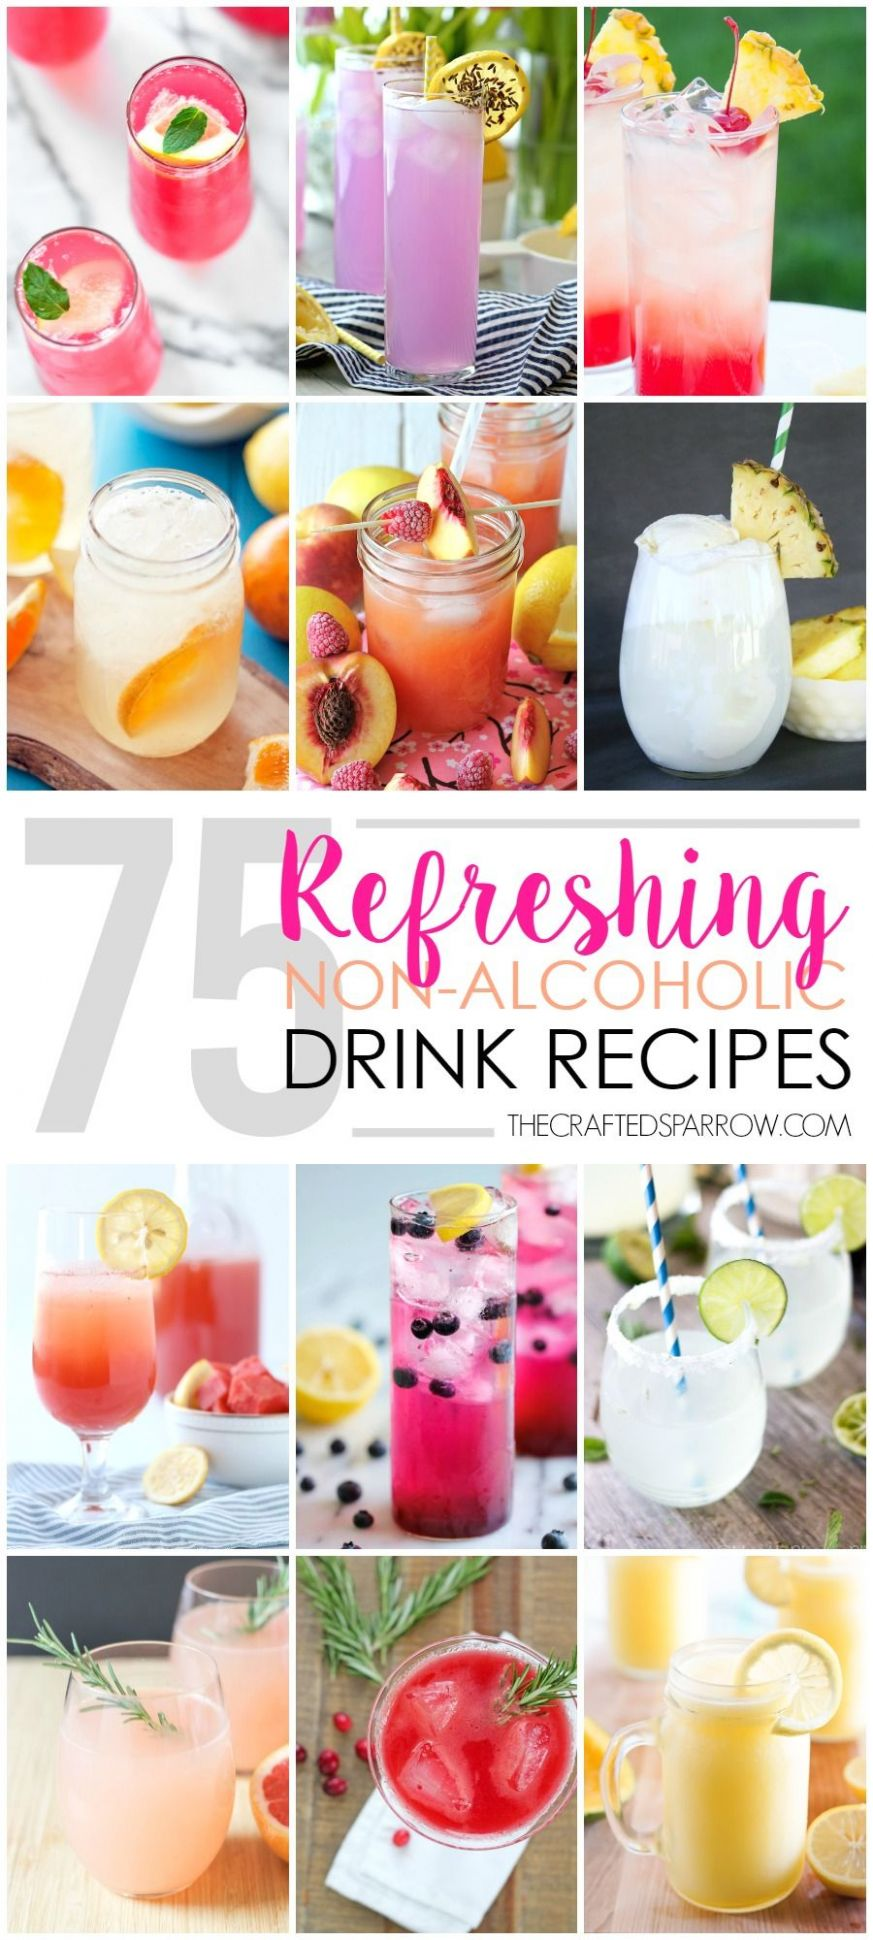 9 Refreshing Non-Alcoholic Drink Recipes | Drinks alcohol recipes ...